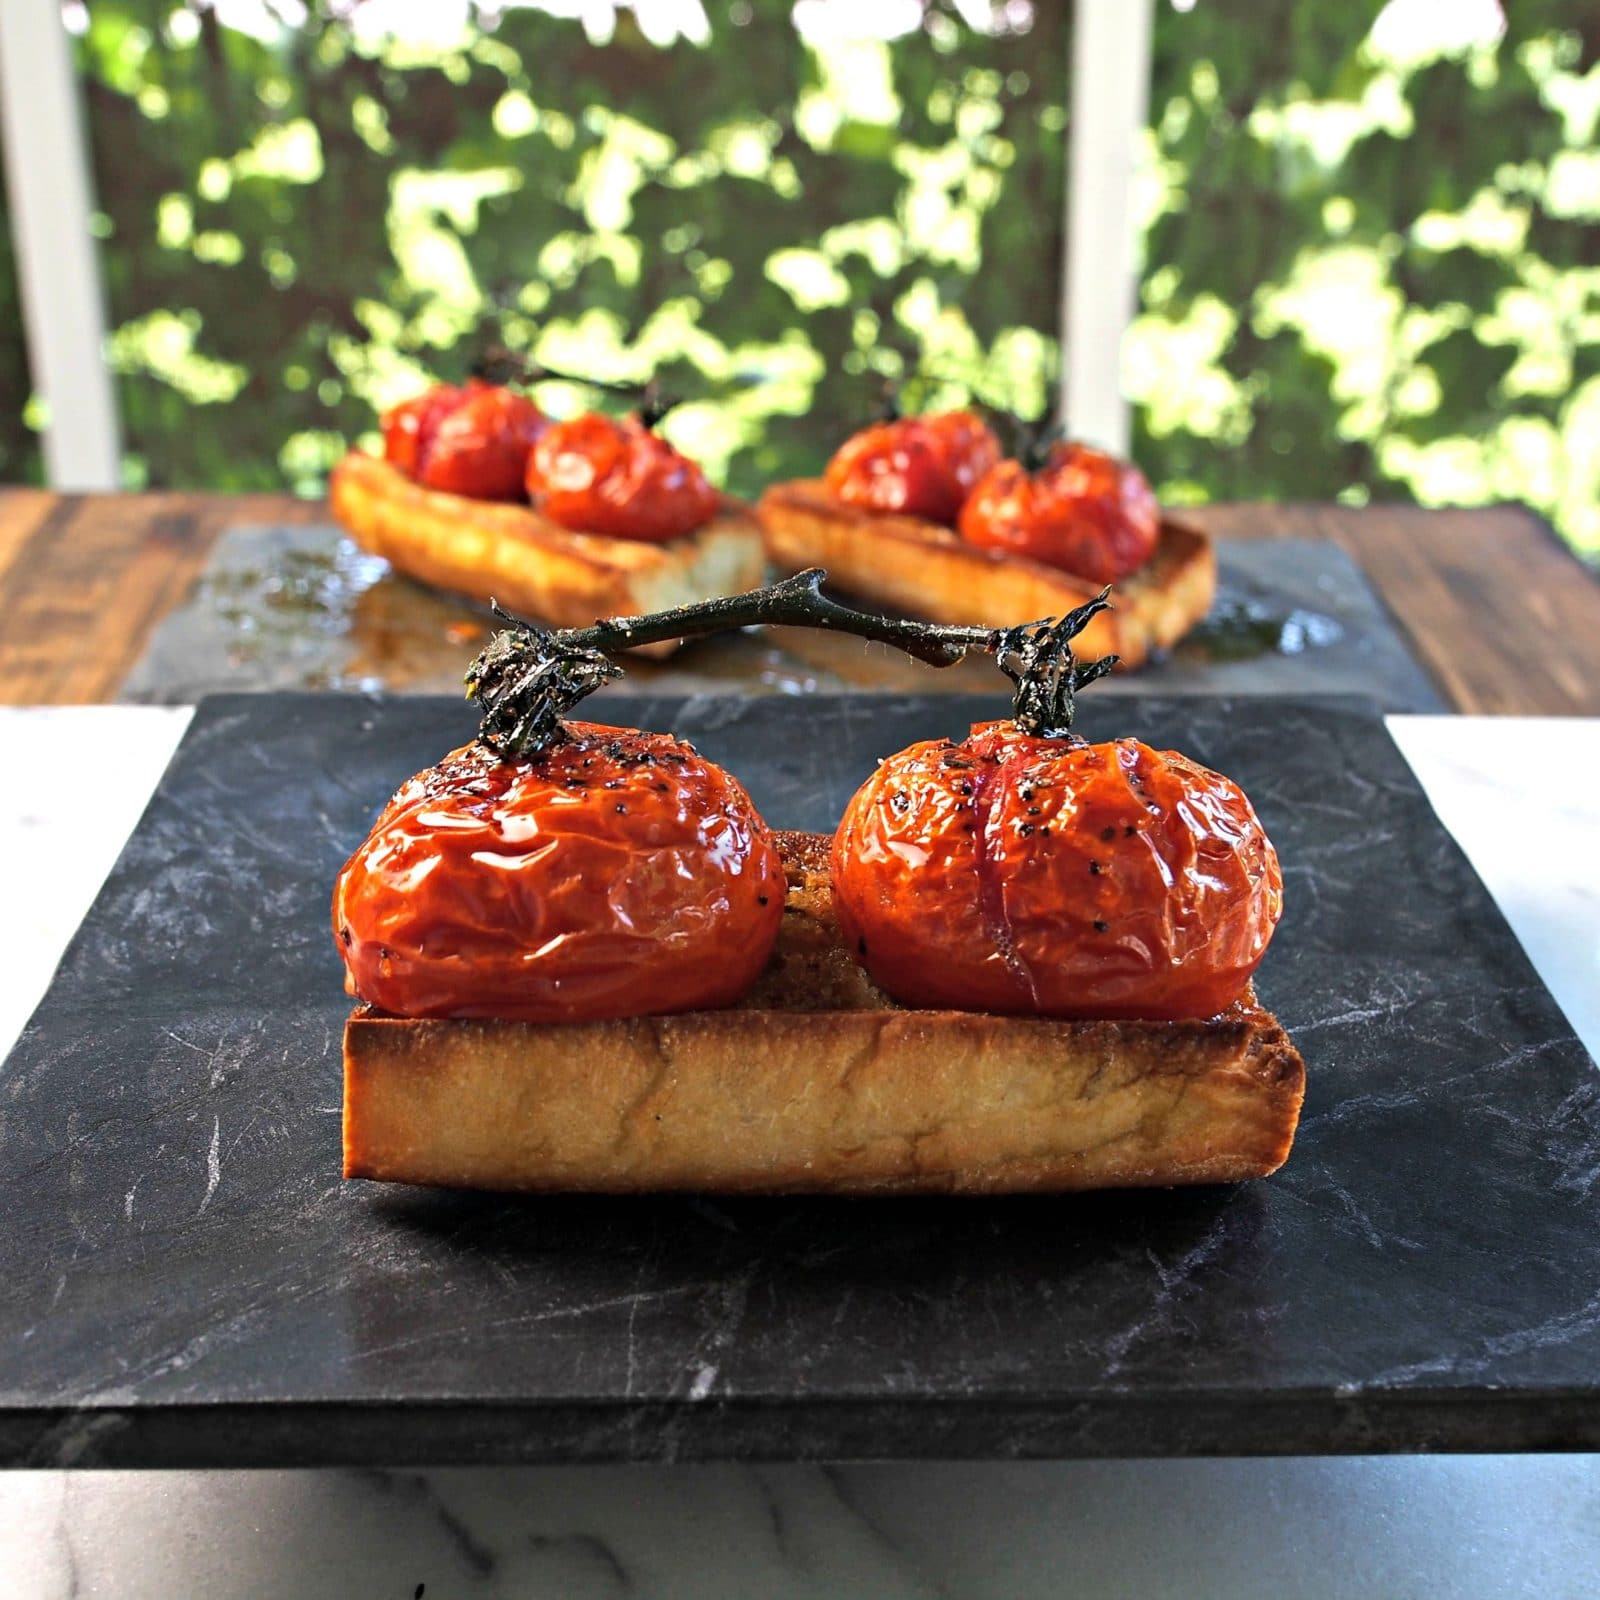 Roasted Tomato Bruschetta. Toasted Italian bread topped w/roasted tomatoes on the vine - the perfect appetizer for your favorite Italian meal. Simply Sated